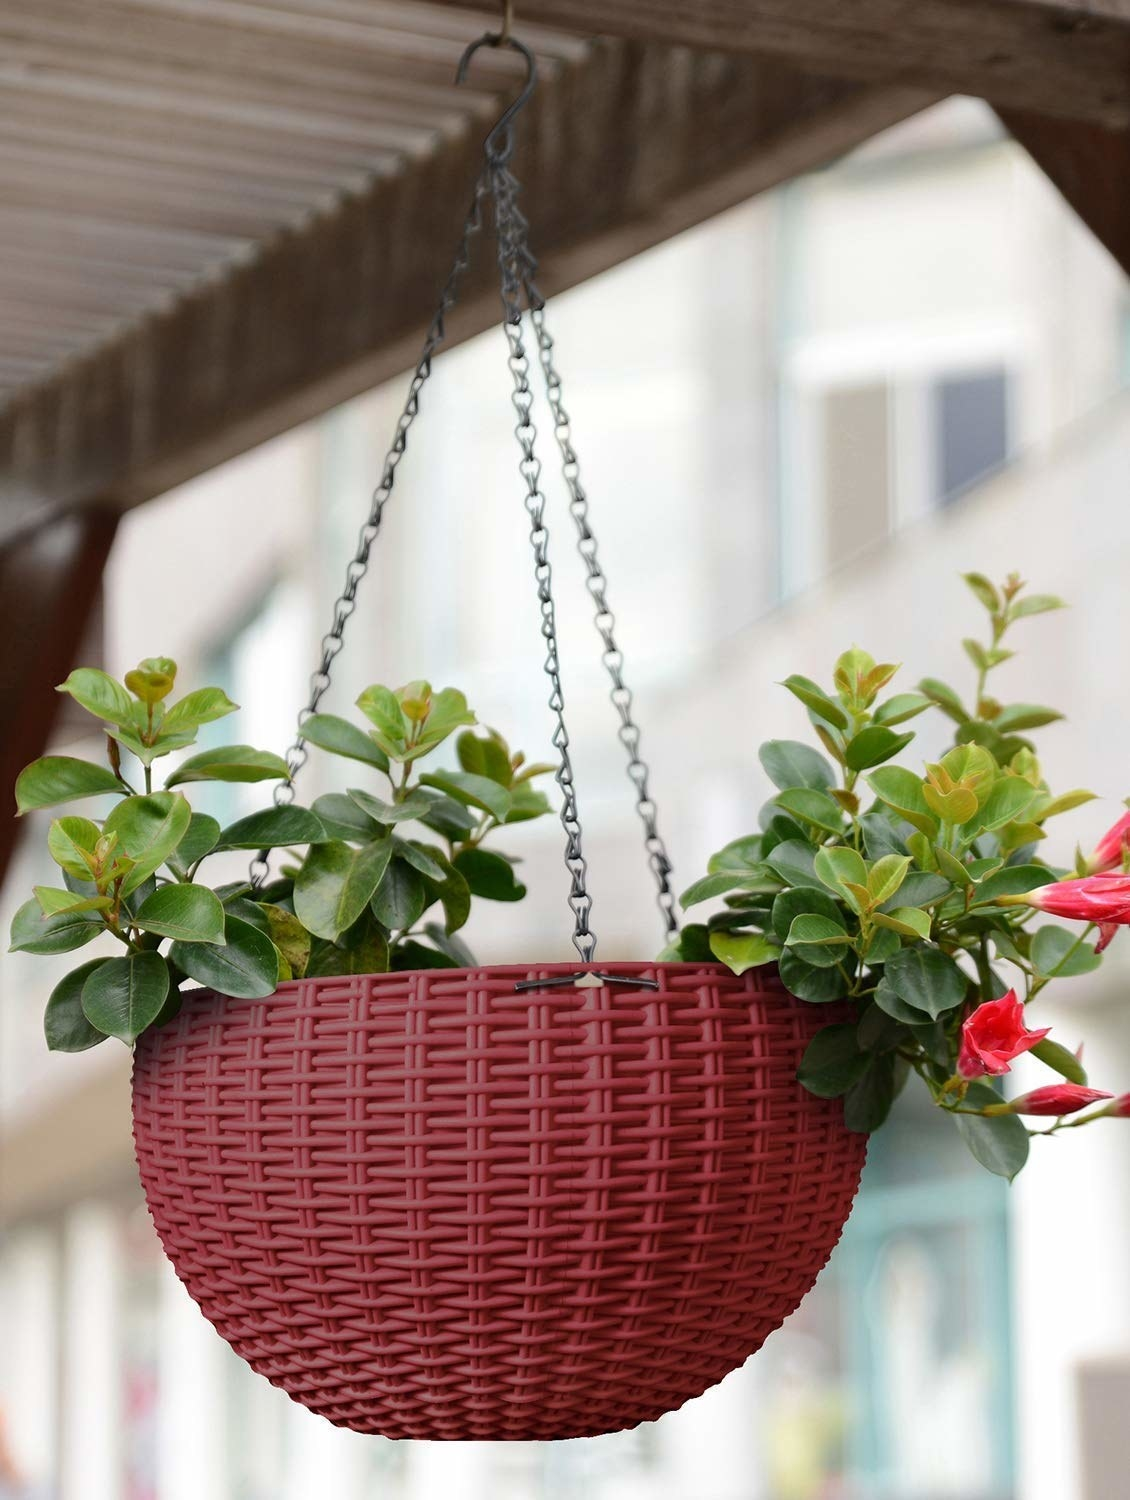 A maroon basket with plants in it